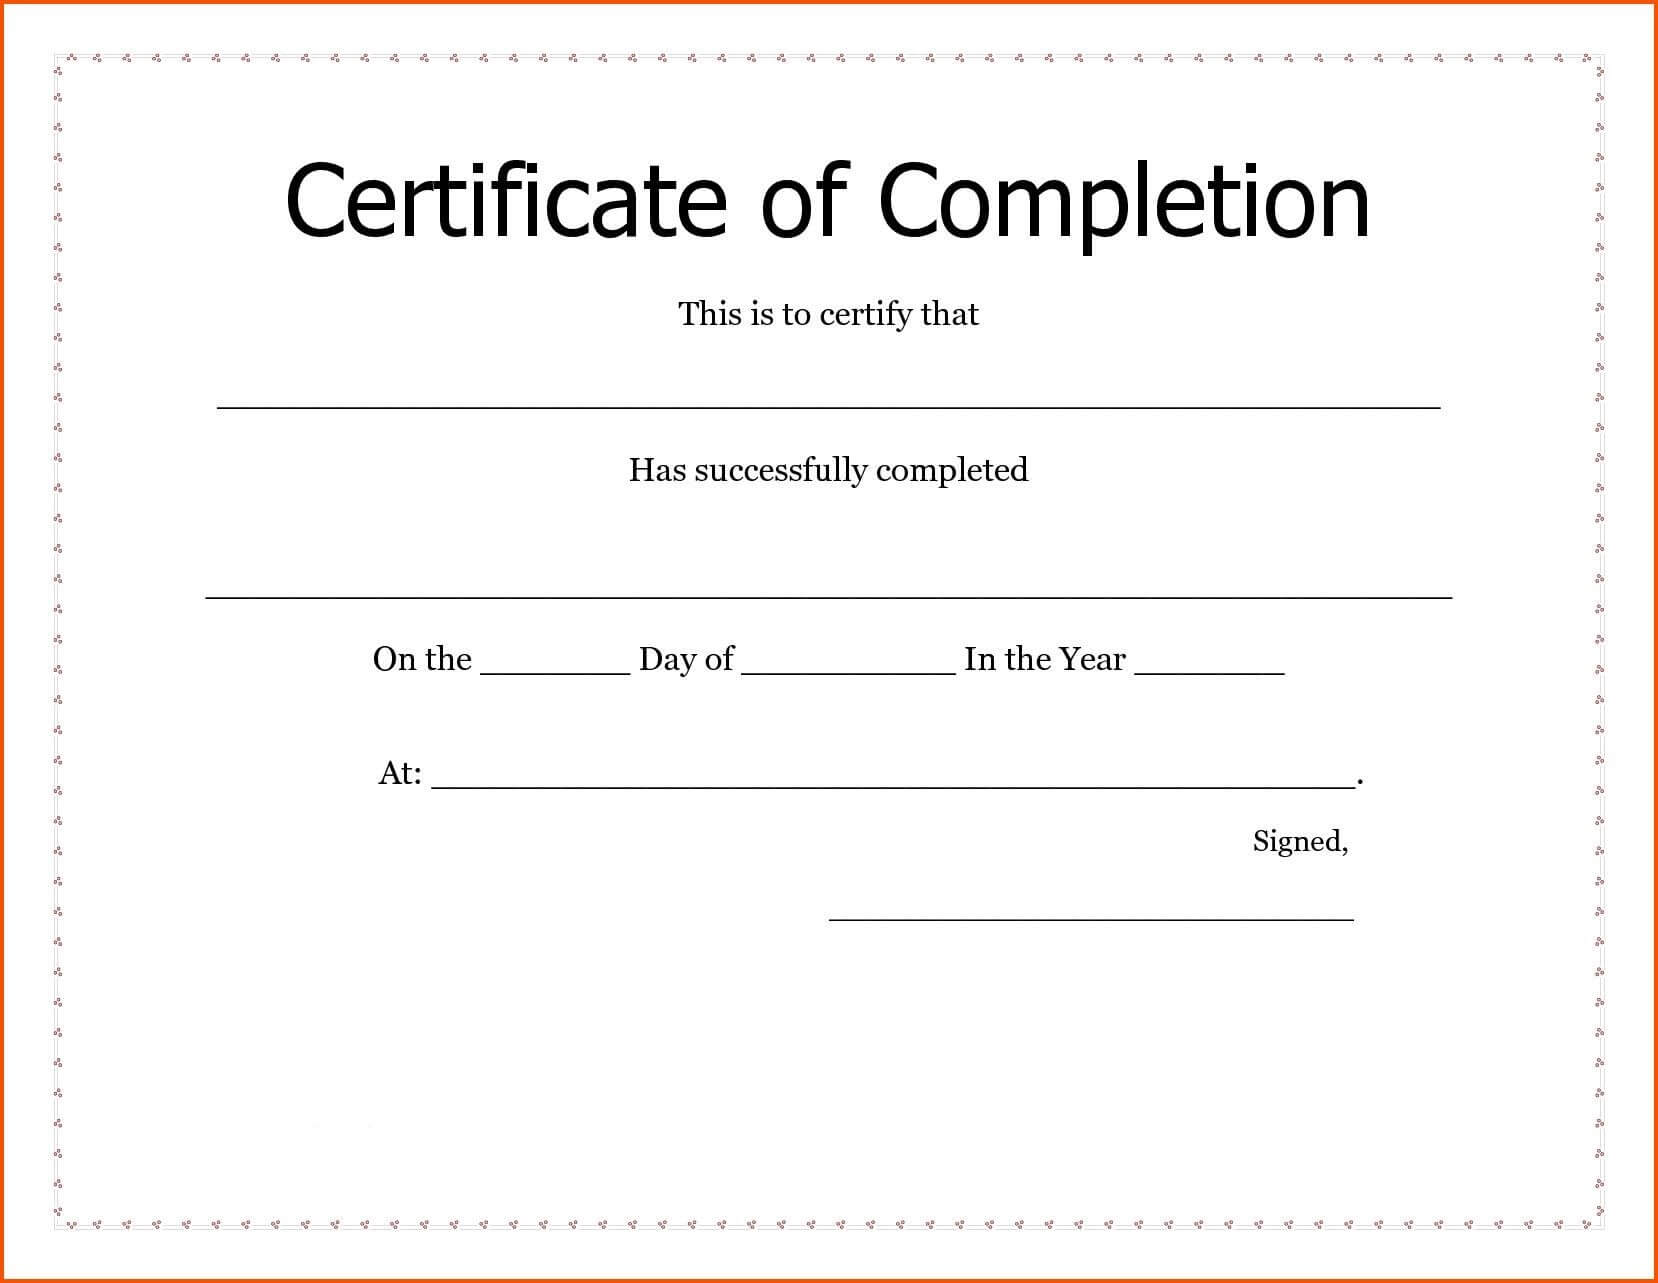 Certificates. New Certificate Of Completion Template Word With Regard To Certificate Of Completion Template Word